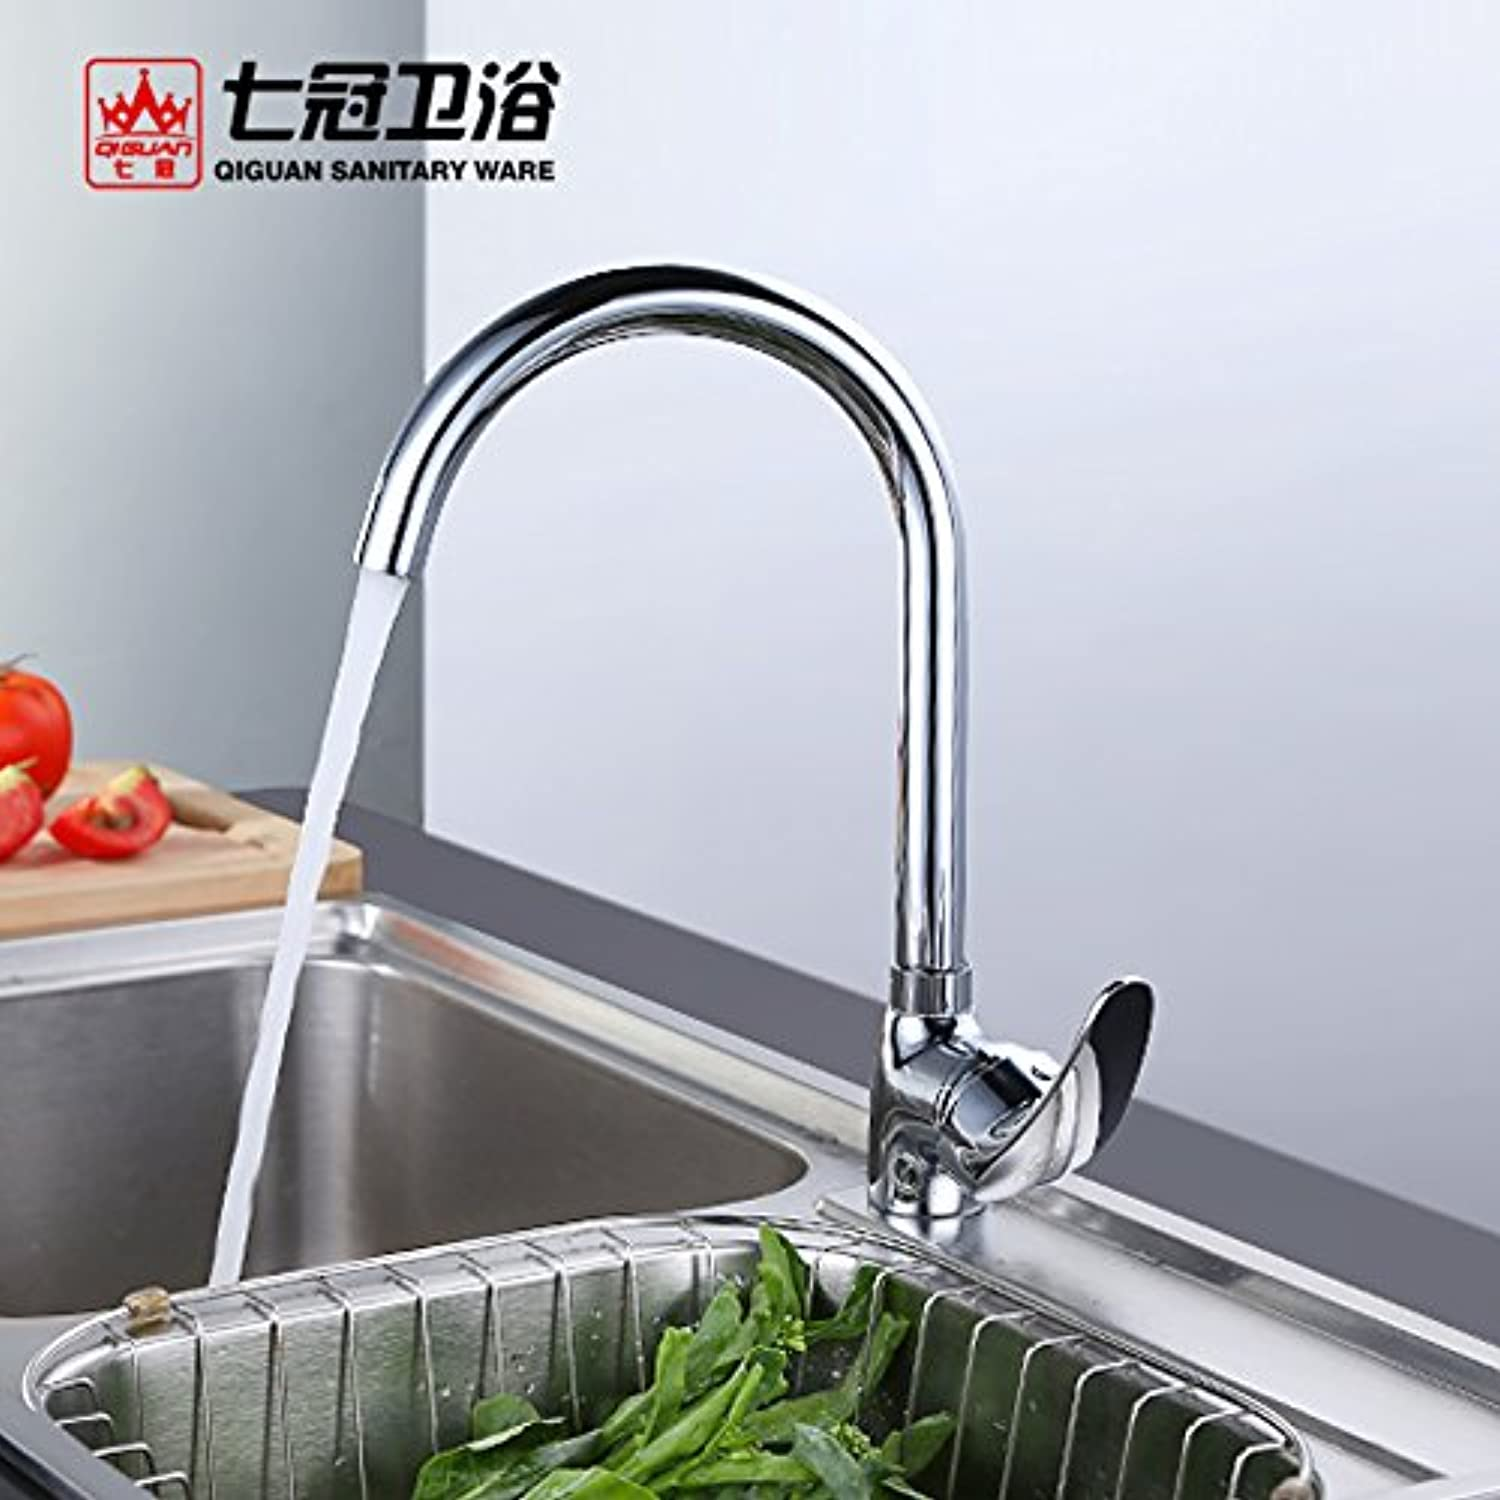 Commercial Single Lever Pull Down Kitchen Sink Faucet Brass Constructed Polished Seven Crown Bathroom Copper Kitchen Hot and Cold Faucet Sink Faucet Sink 360 Degree redation